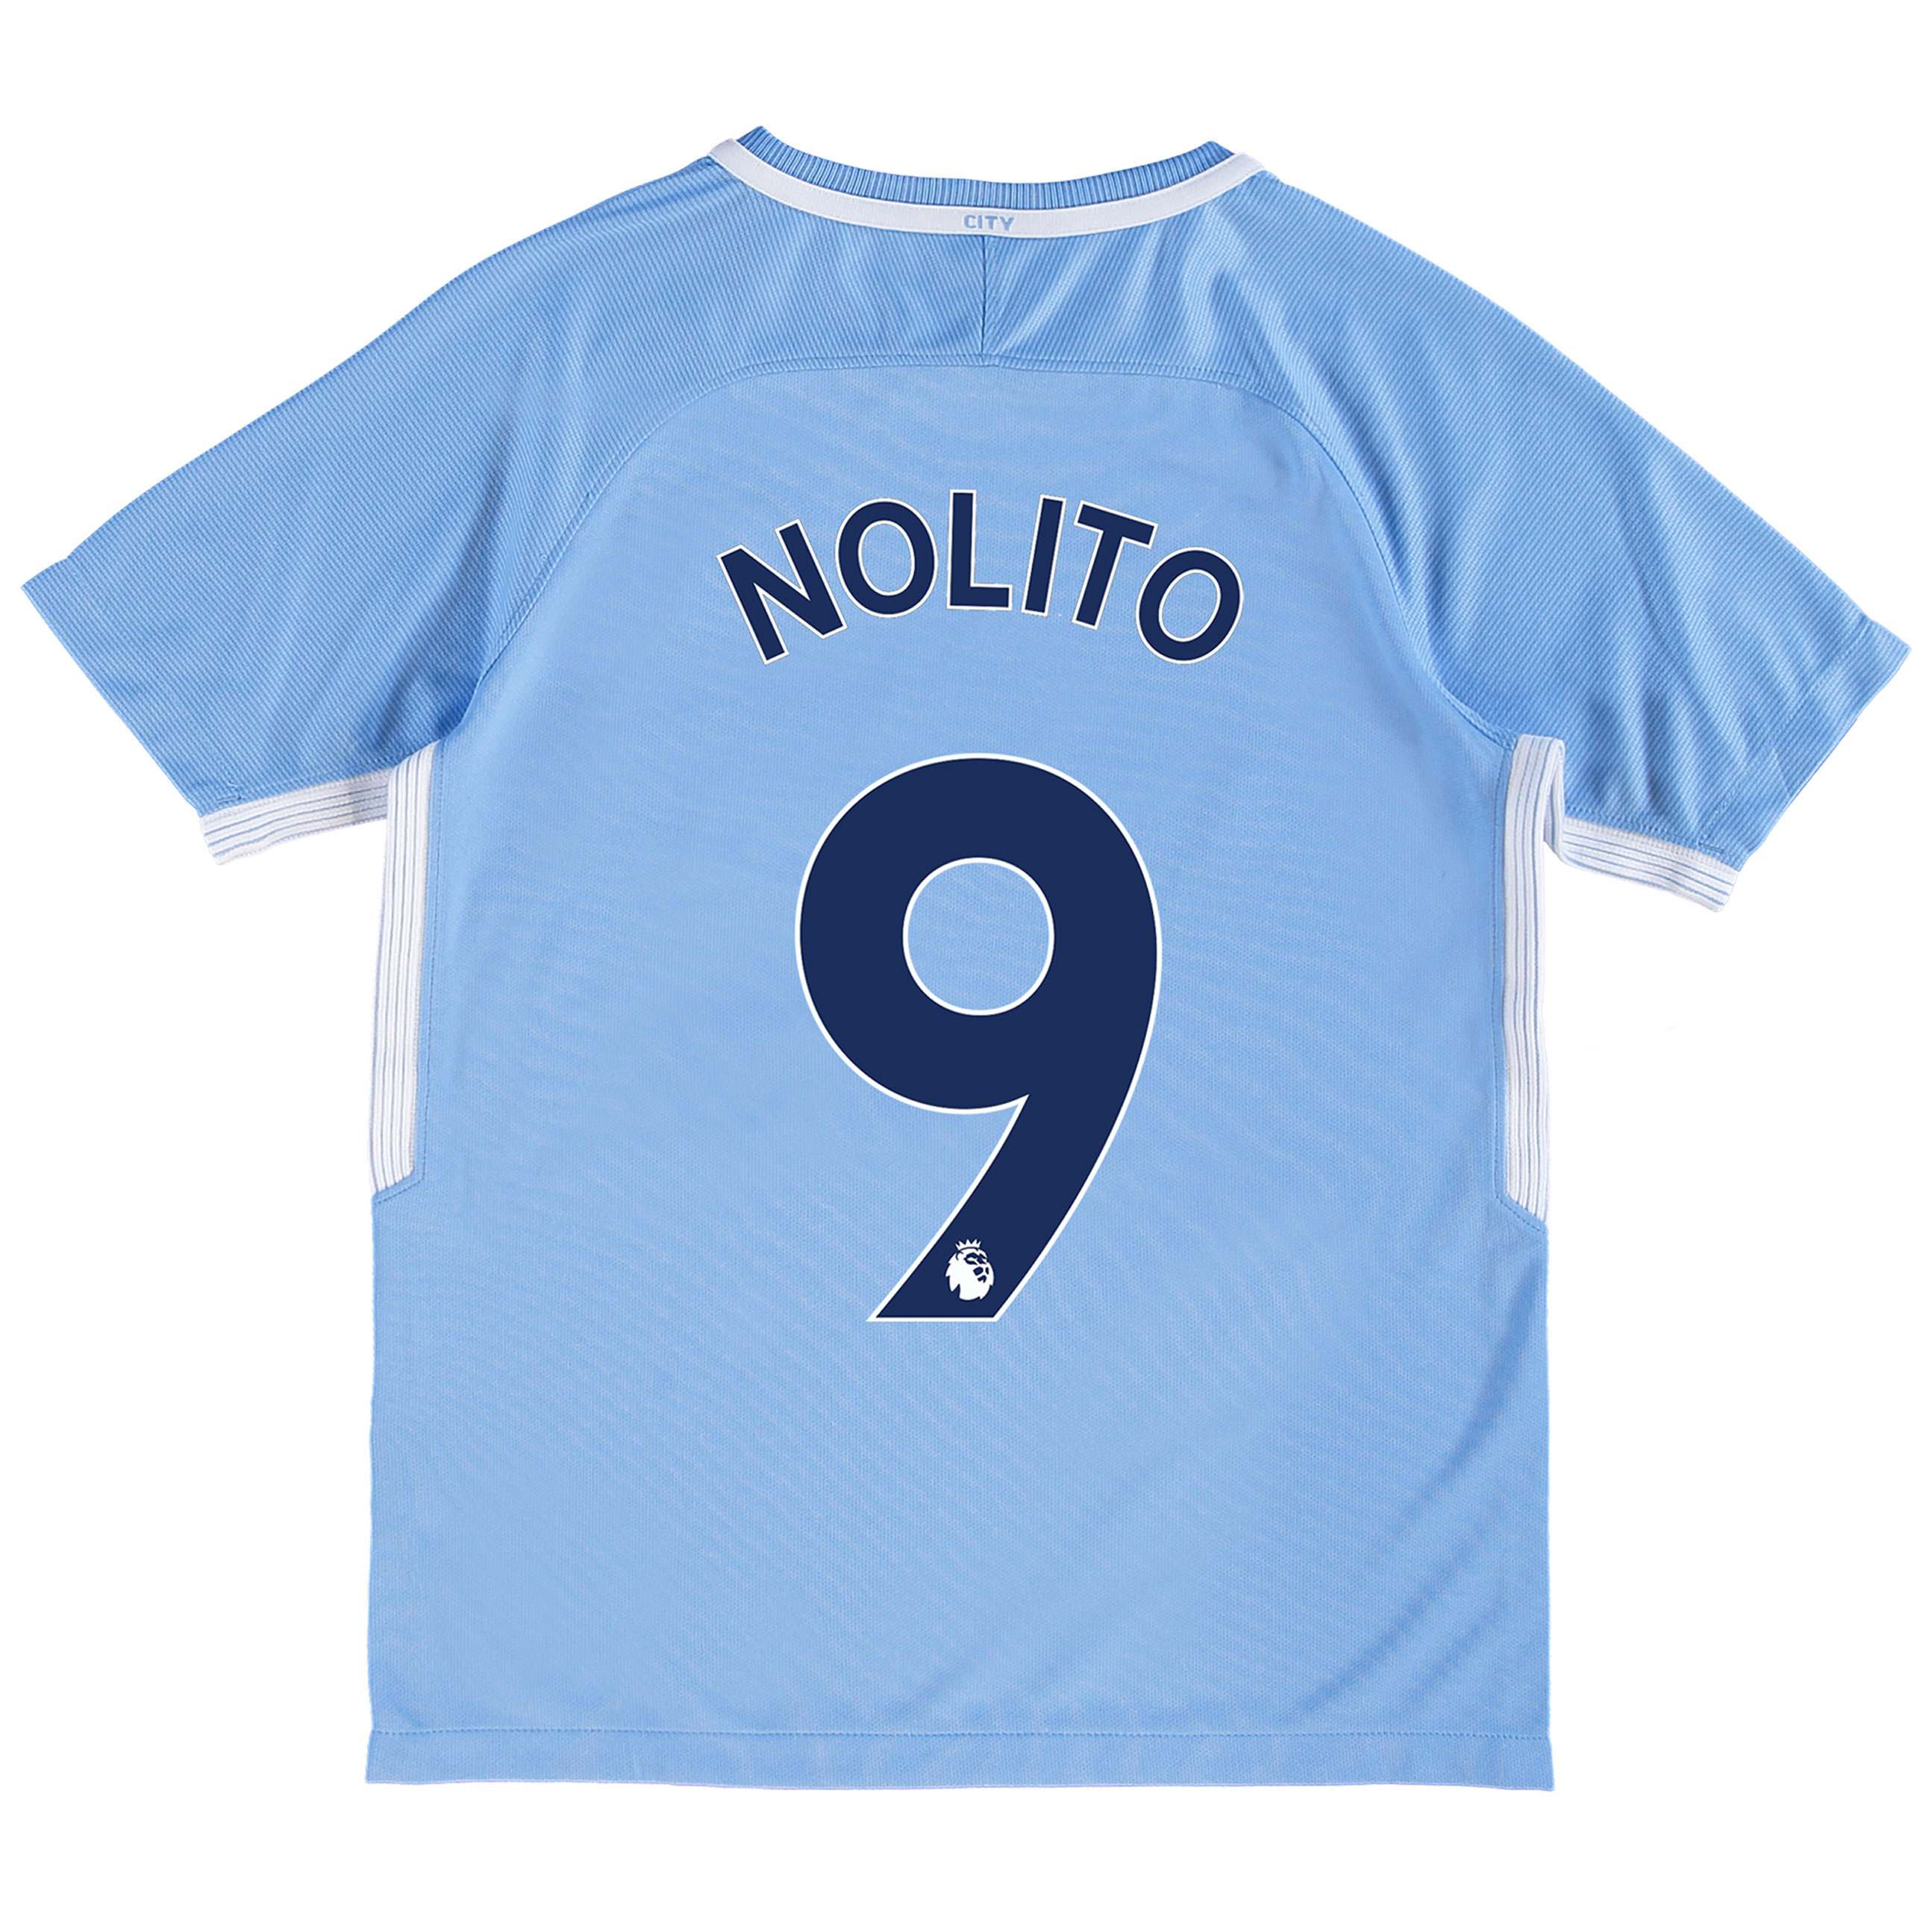 Manchester City Home Stadium Shirt 2017-18 - Kids with Nolito 9 printi